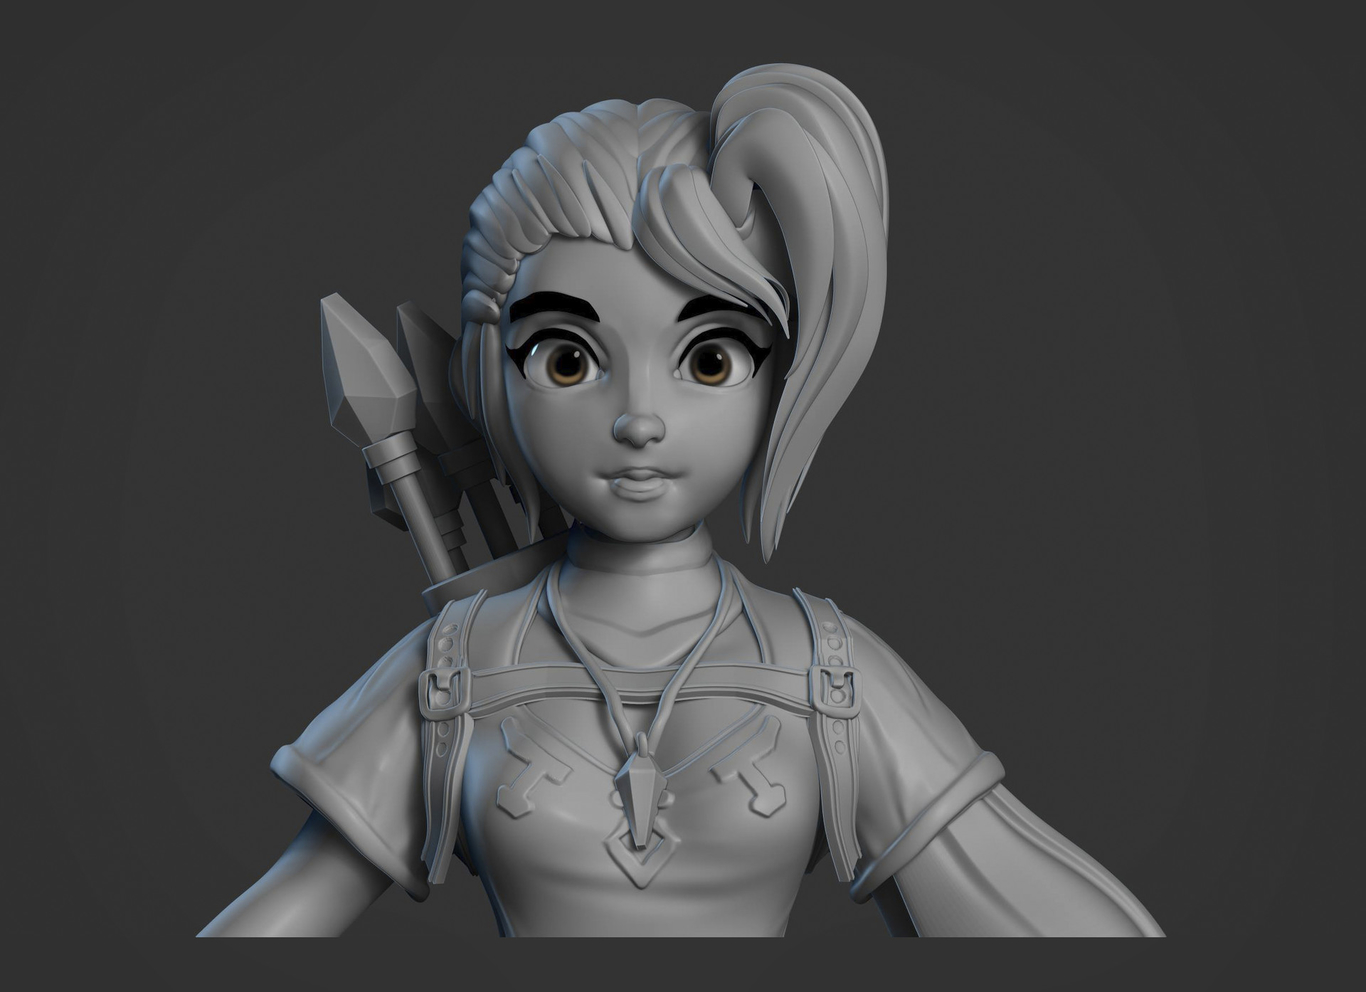 3d girl model character design archer by jorge luis